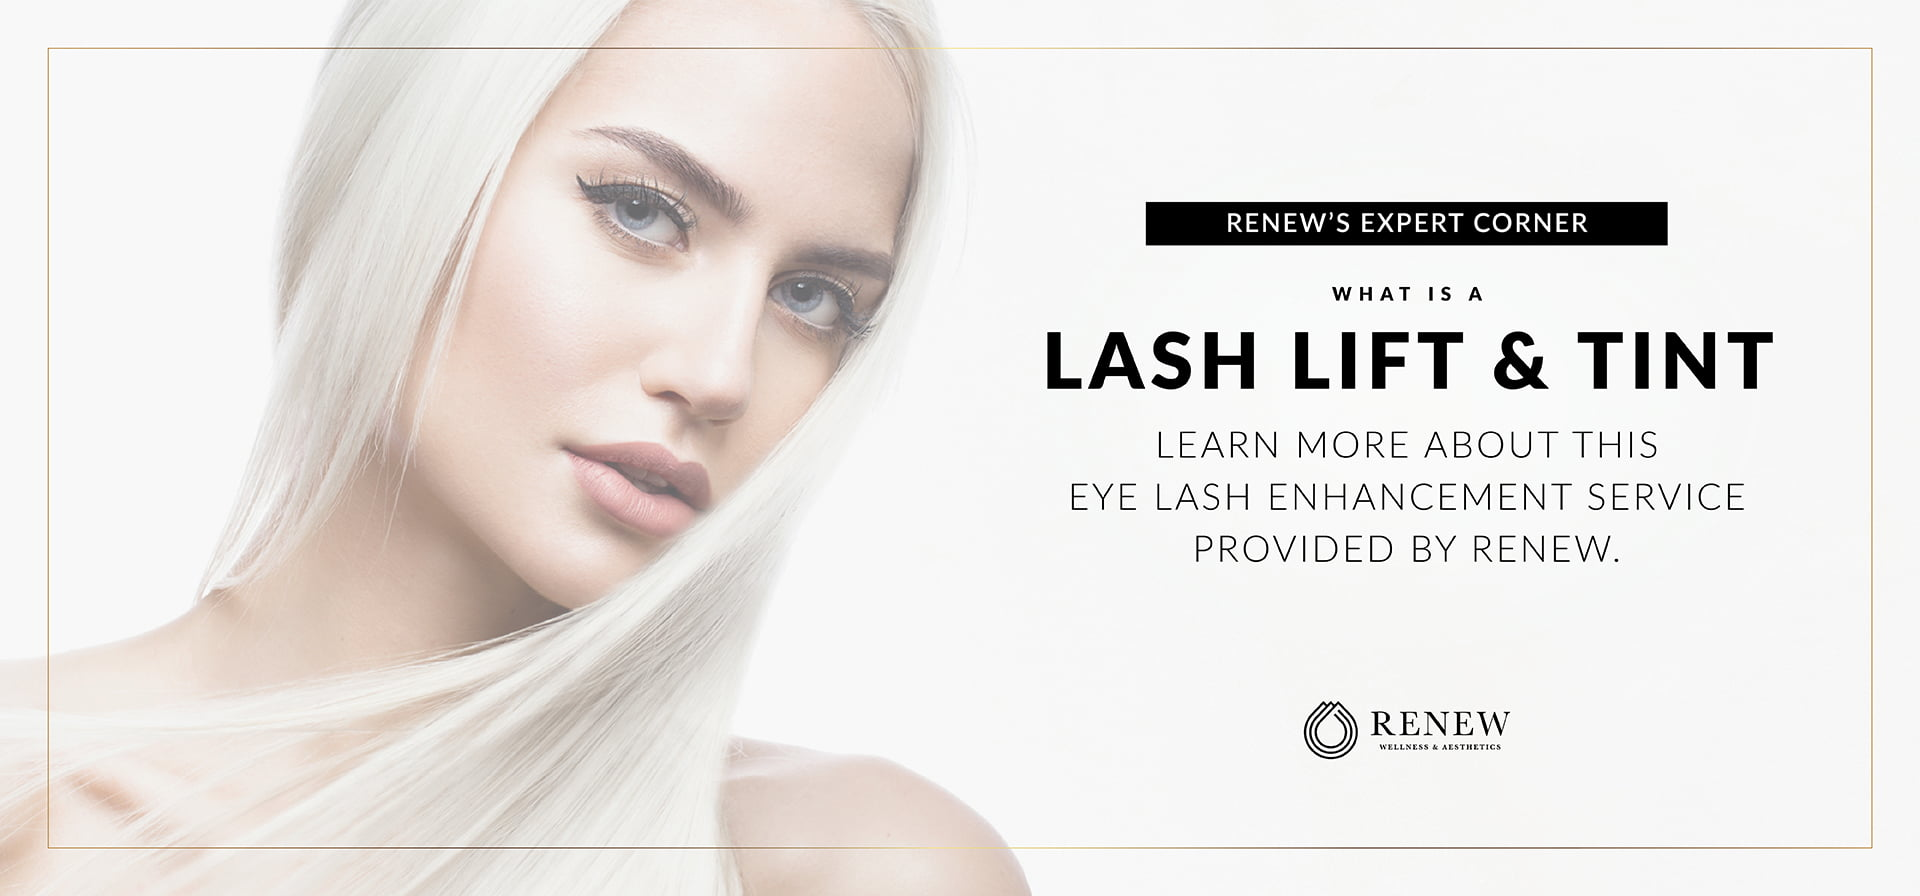 What is a Lash Lift and Tint?